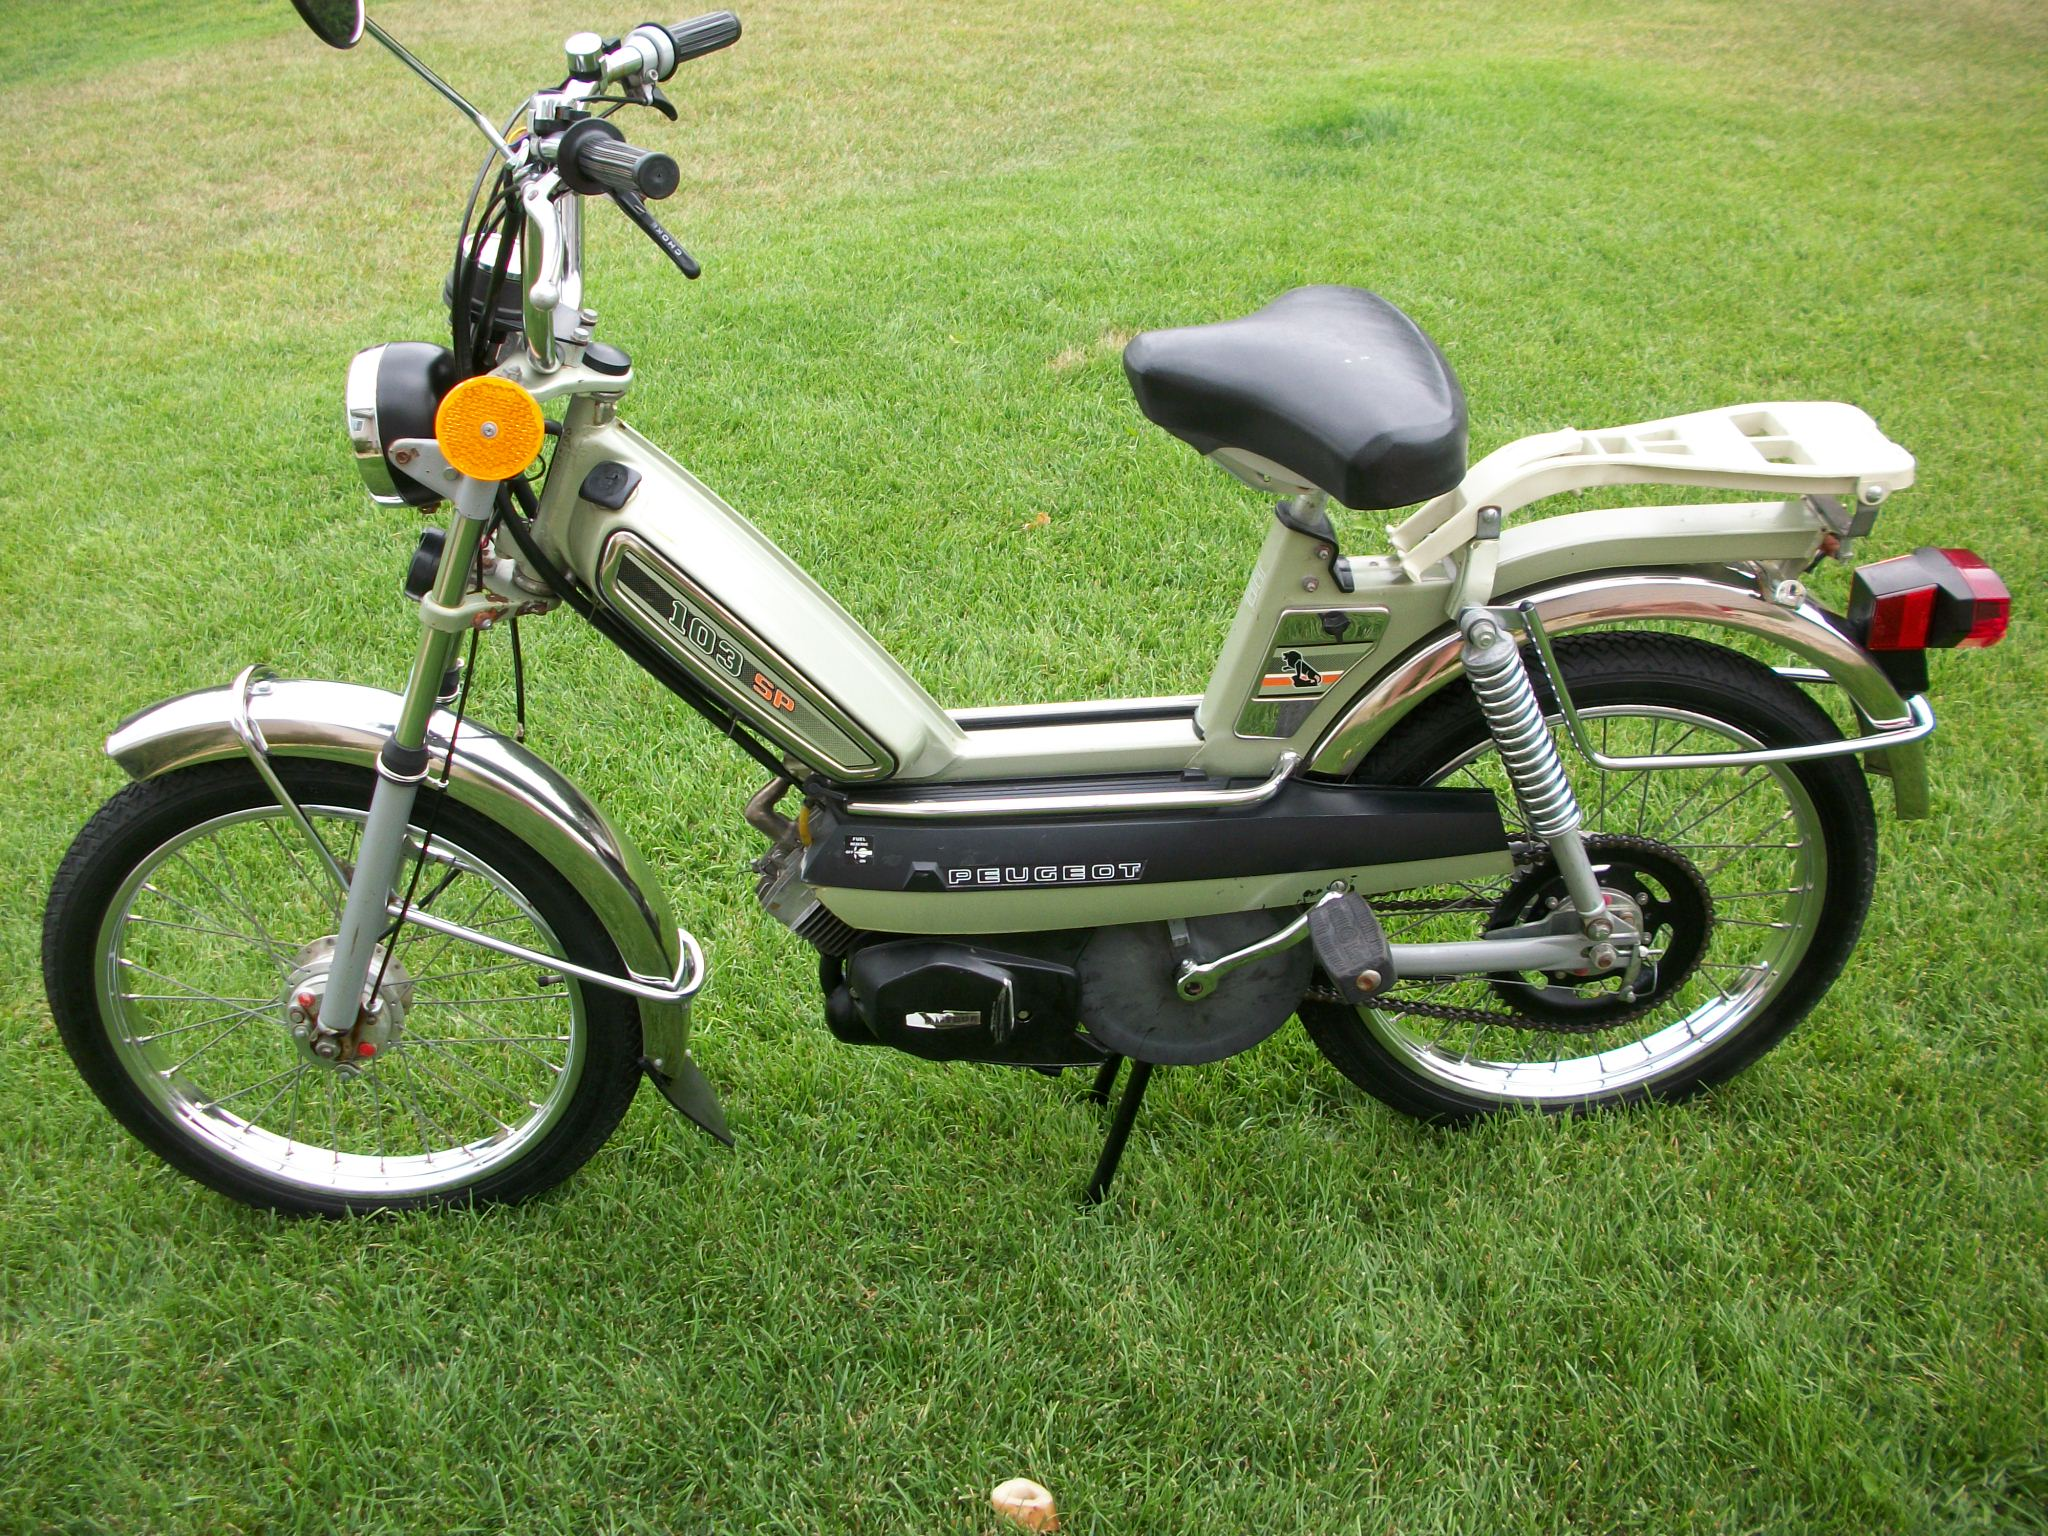 puch moped wiring diagram. Black Bedroom Furniture Sets. Home Design Ideas